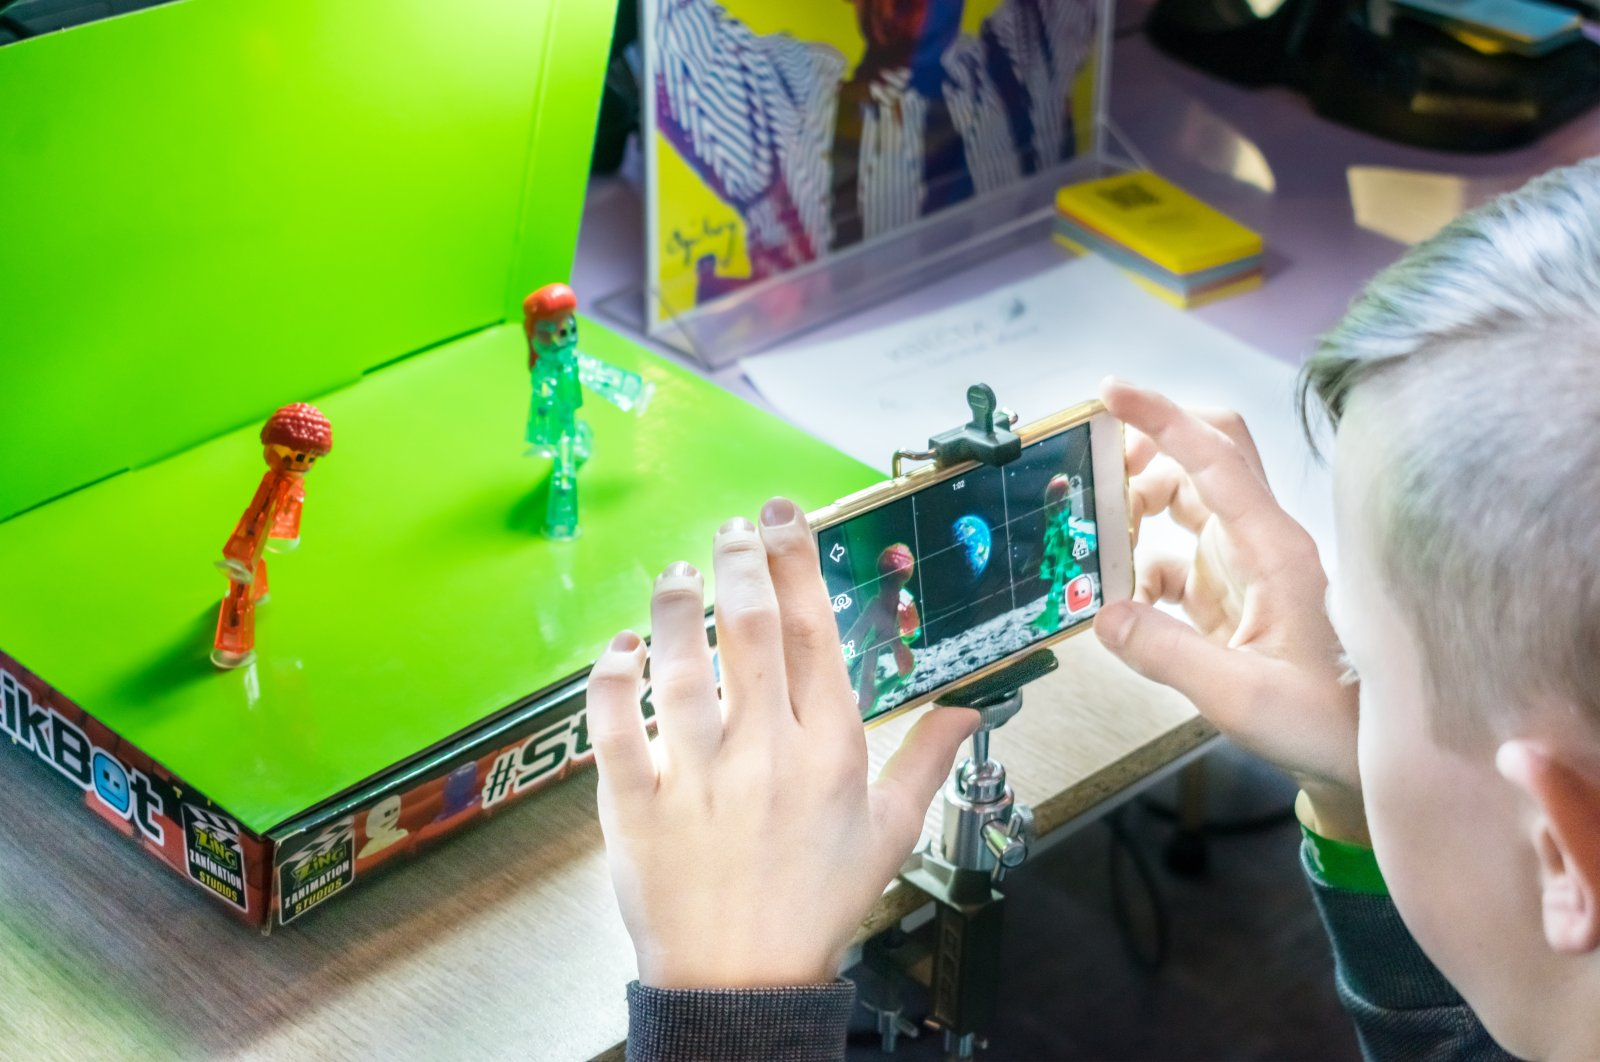 Children will learn the stop-motion technique and produce animated short films at the workshop. (Shutterstock Photo)